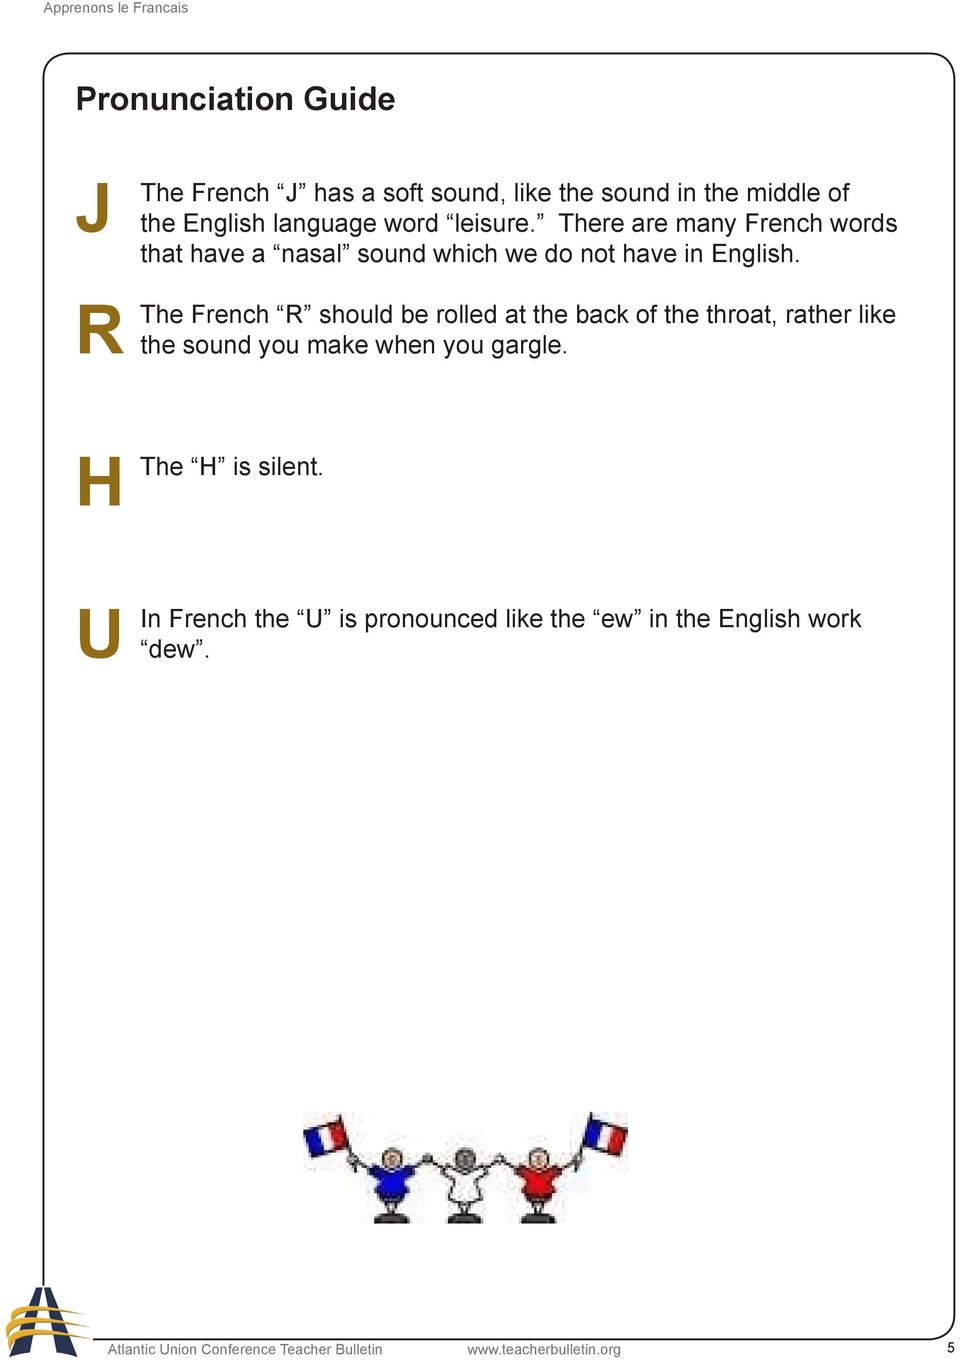 French R should be rolled at the back of the throat, rather like the sound you make when you gargle.